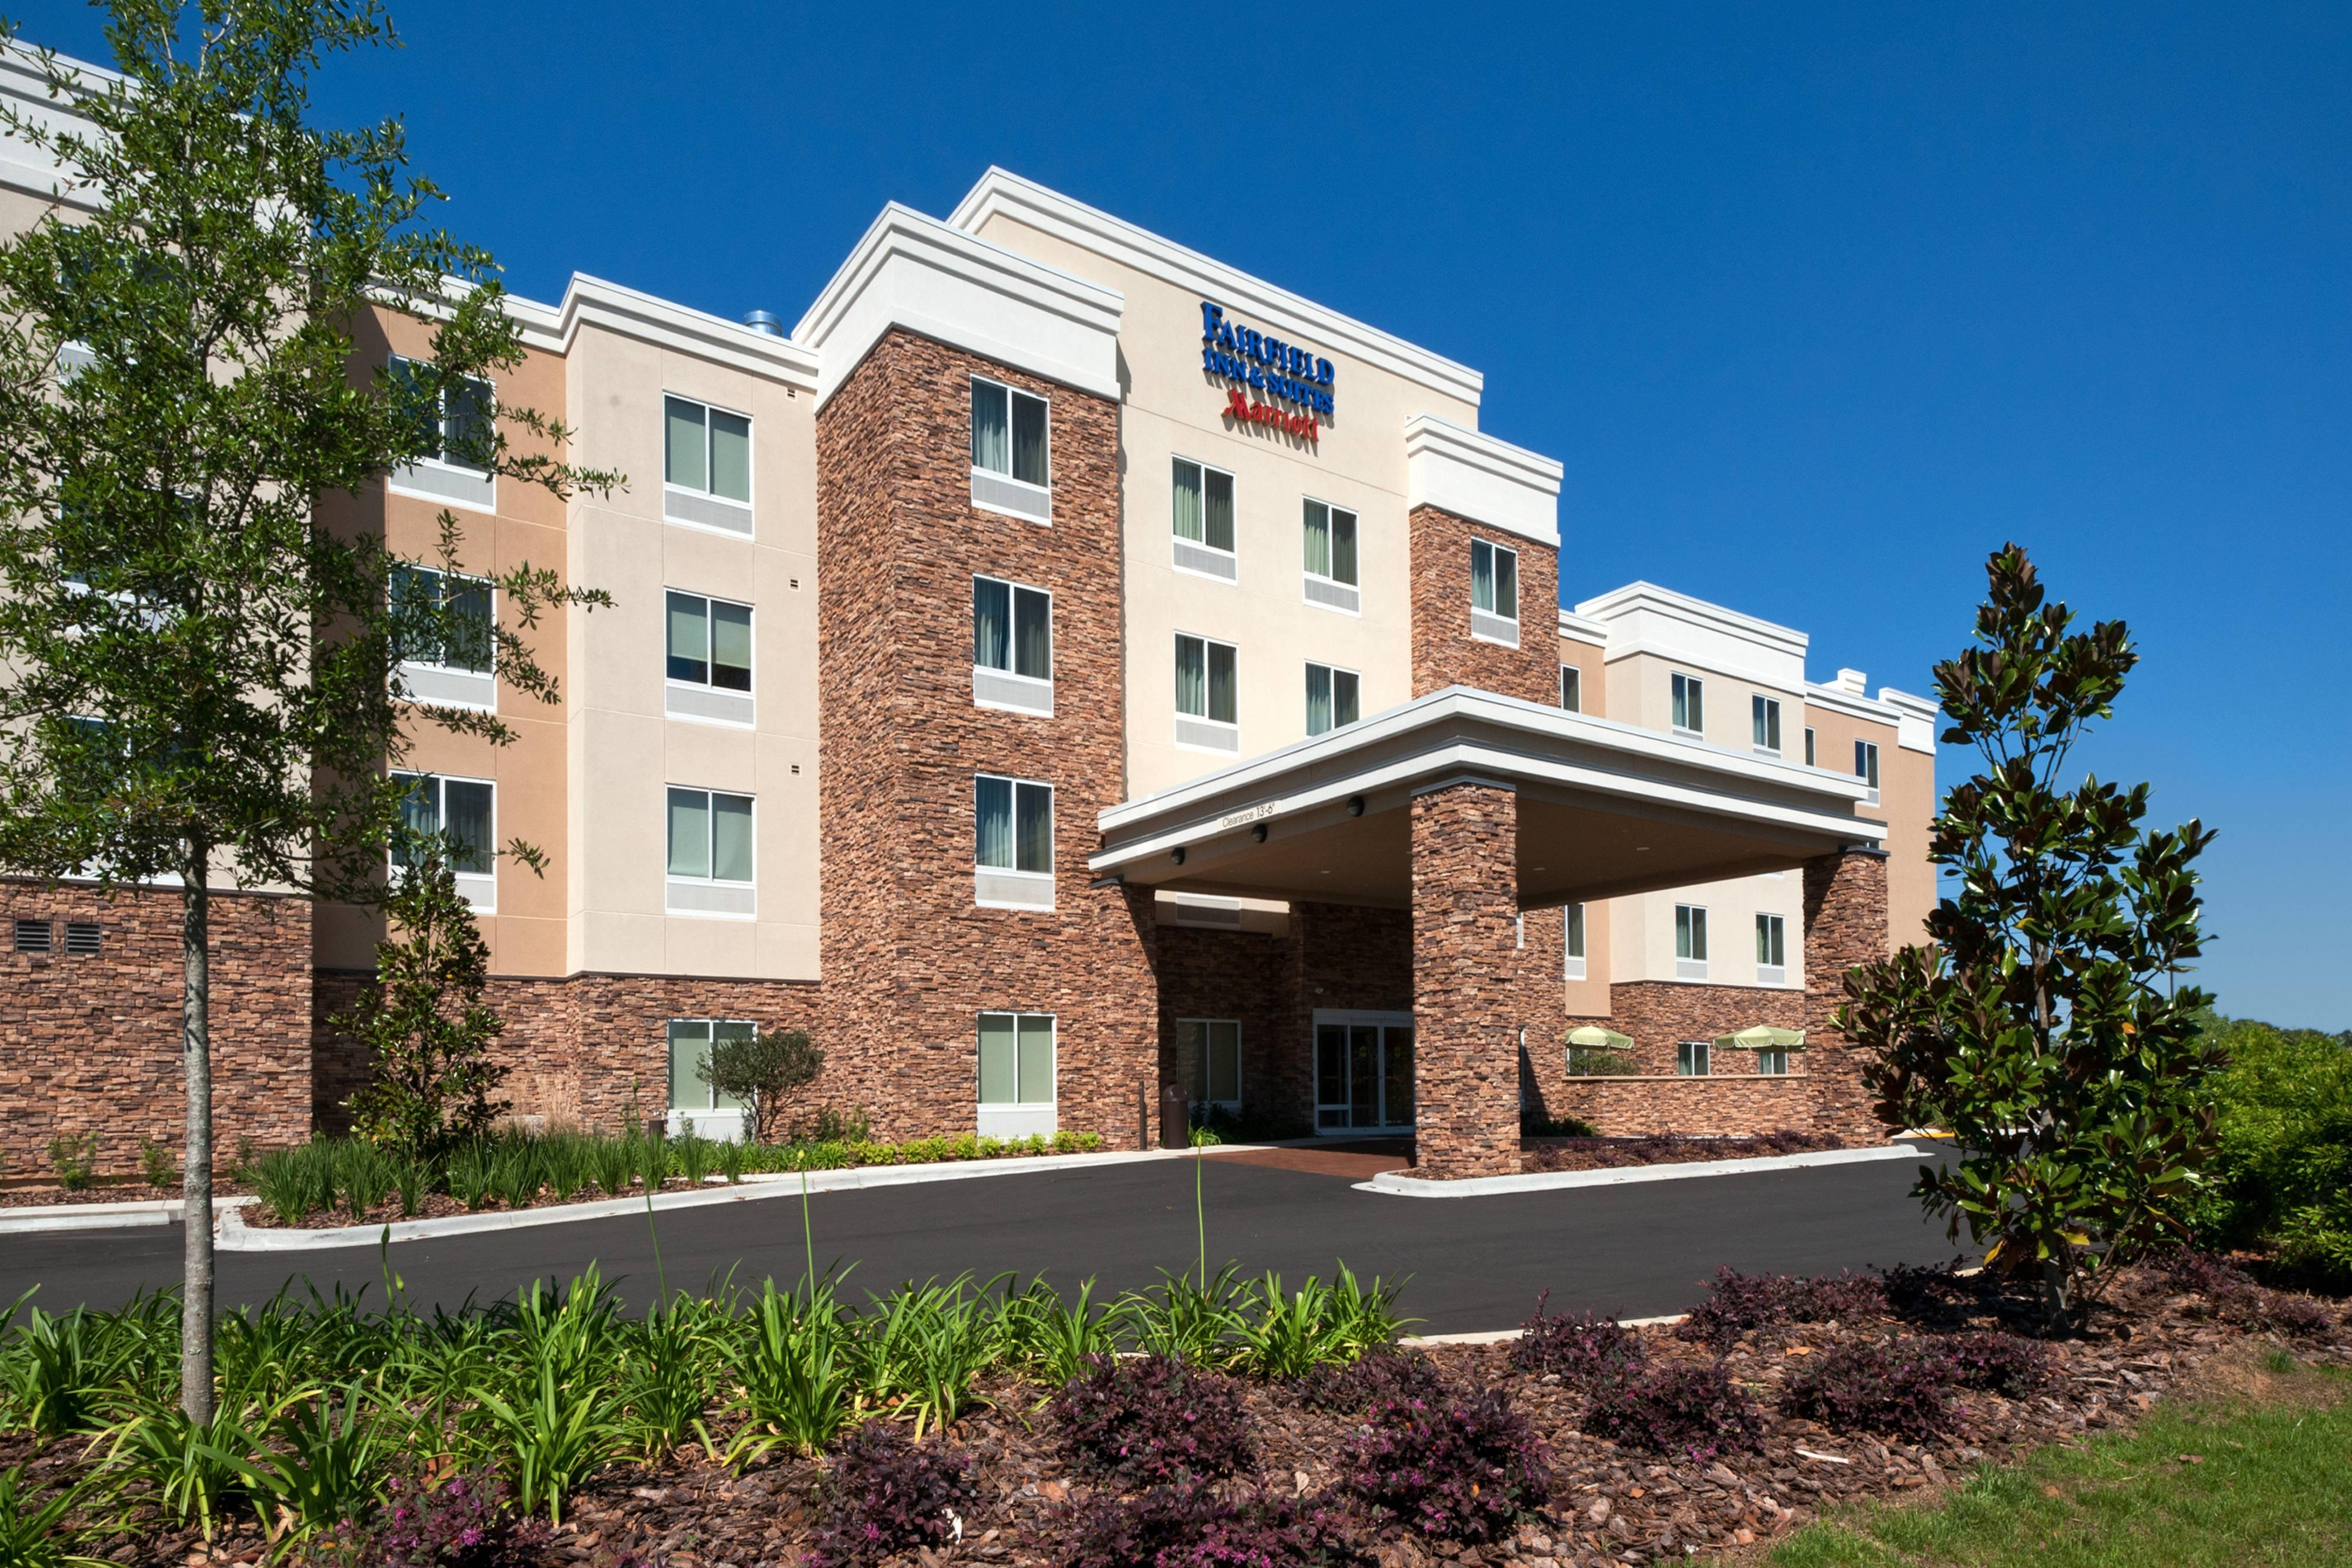 Exterior - Tallahassee, FL hotel